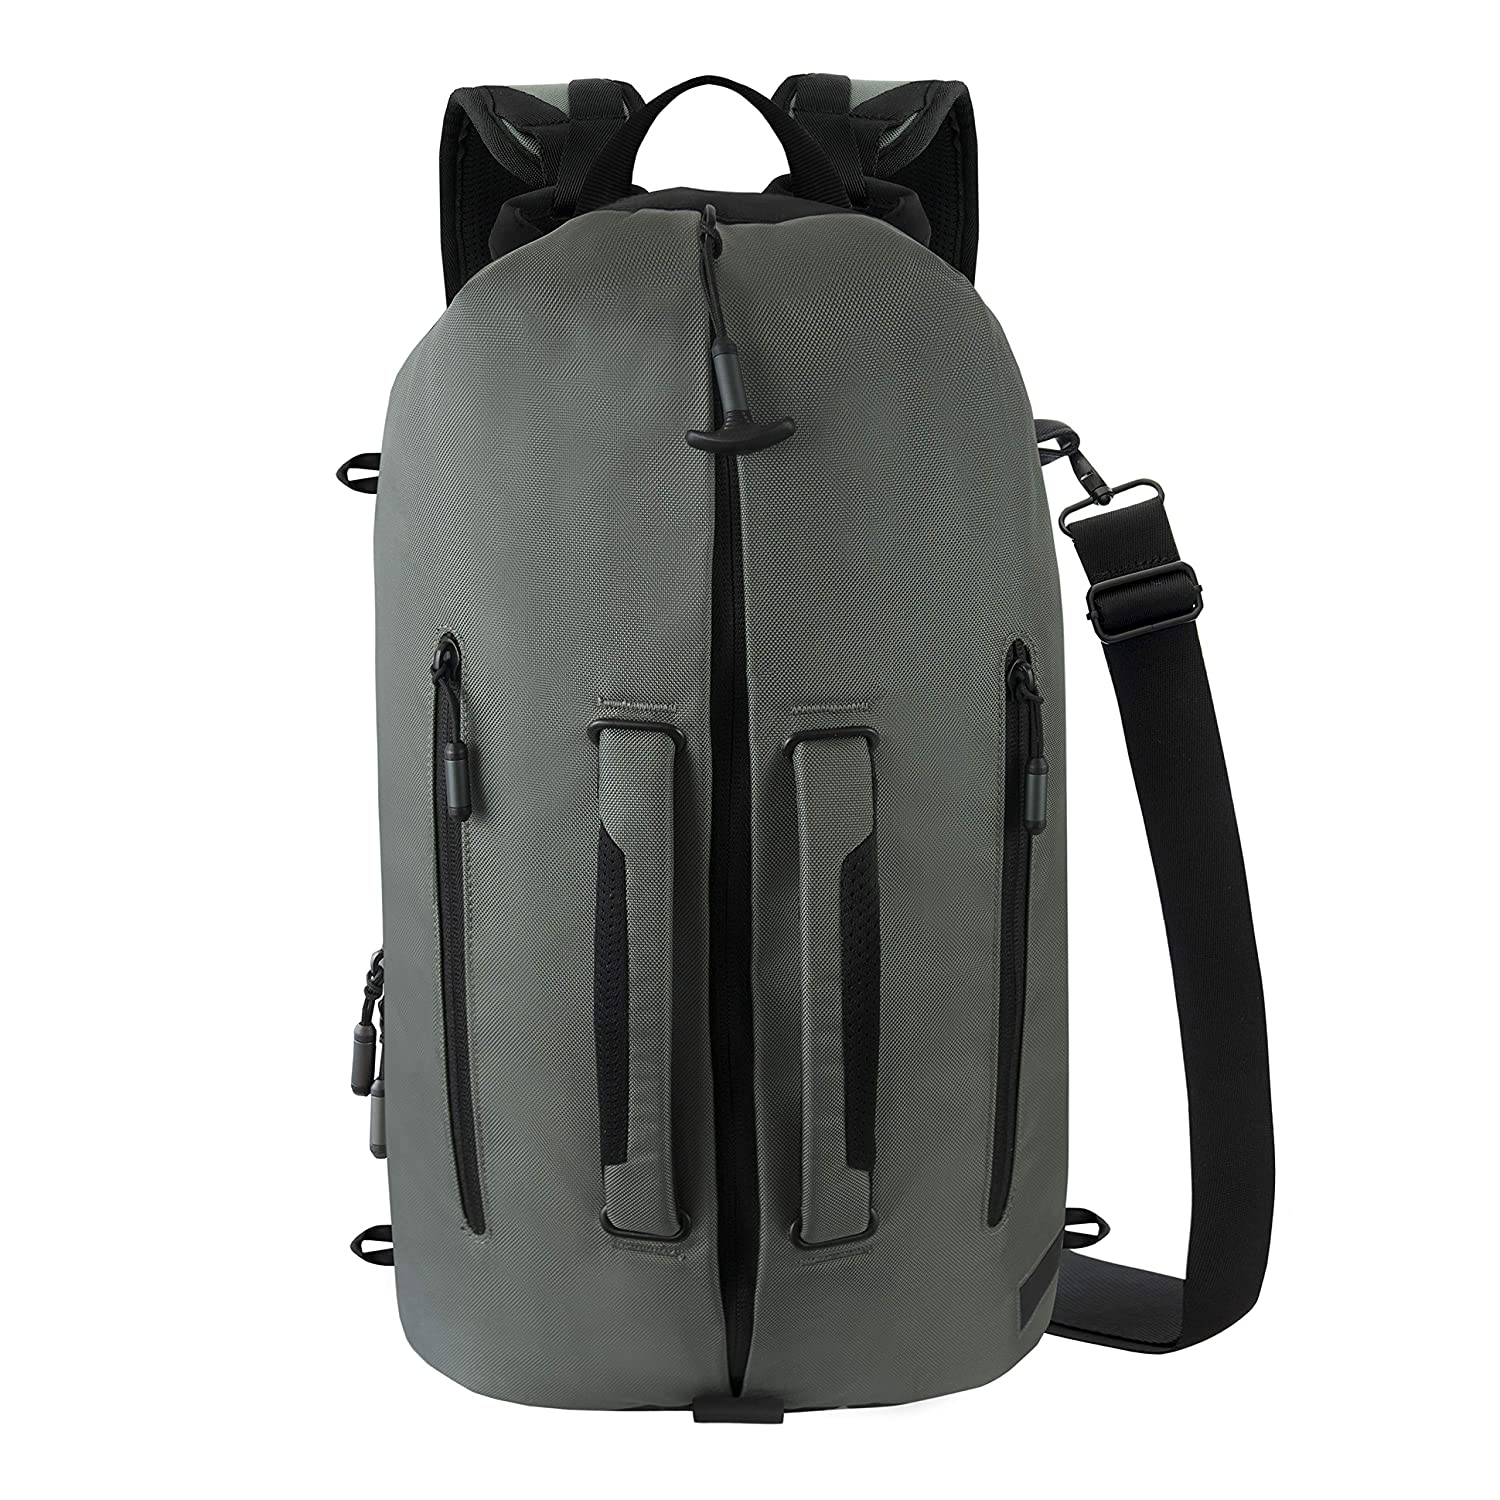 Ascentials Pro Fury, Water Resistant, Durable Nylon Backpack, and Duffel Bag Men and Women, with 15 Inch Laptop Sleeve